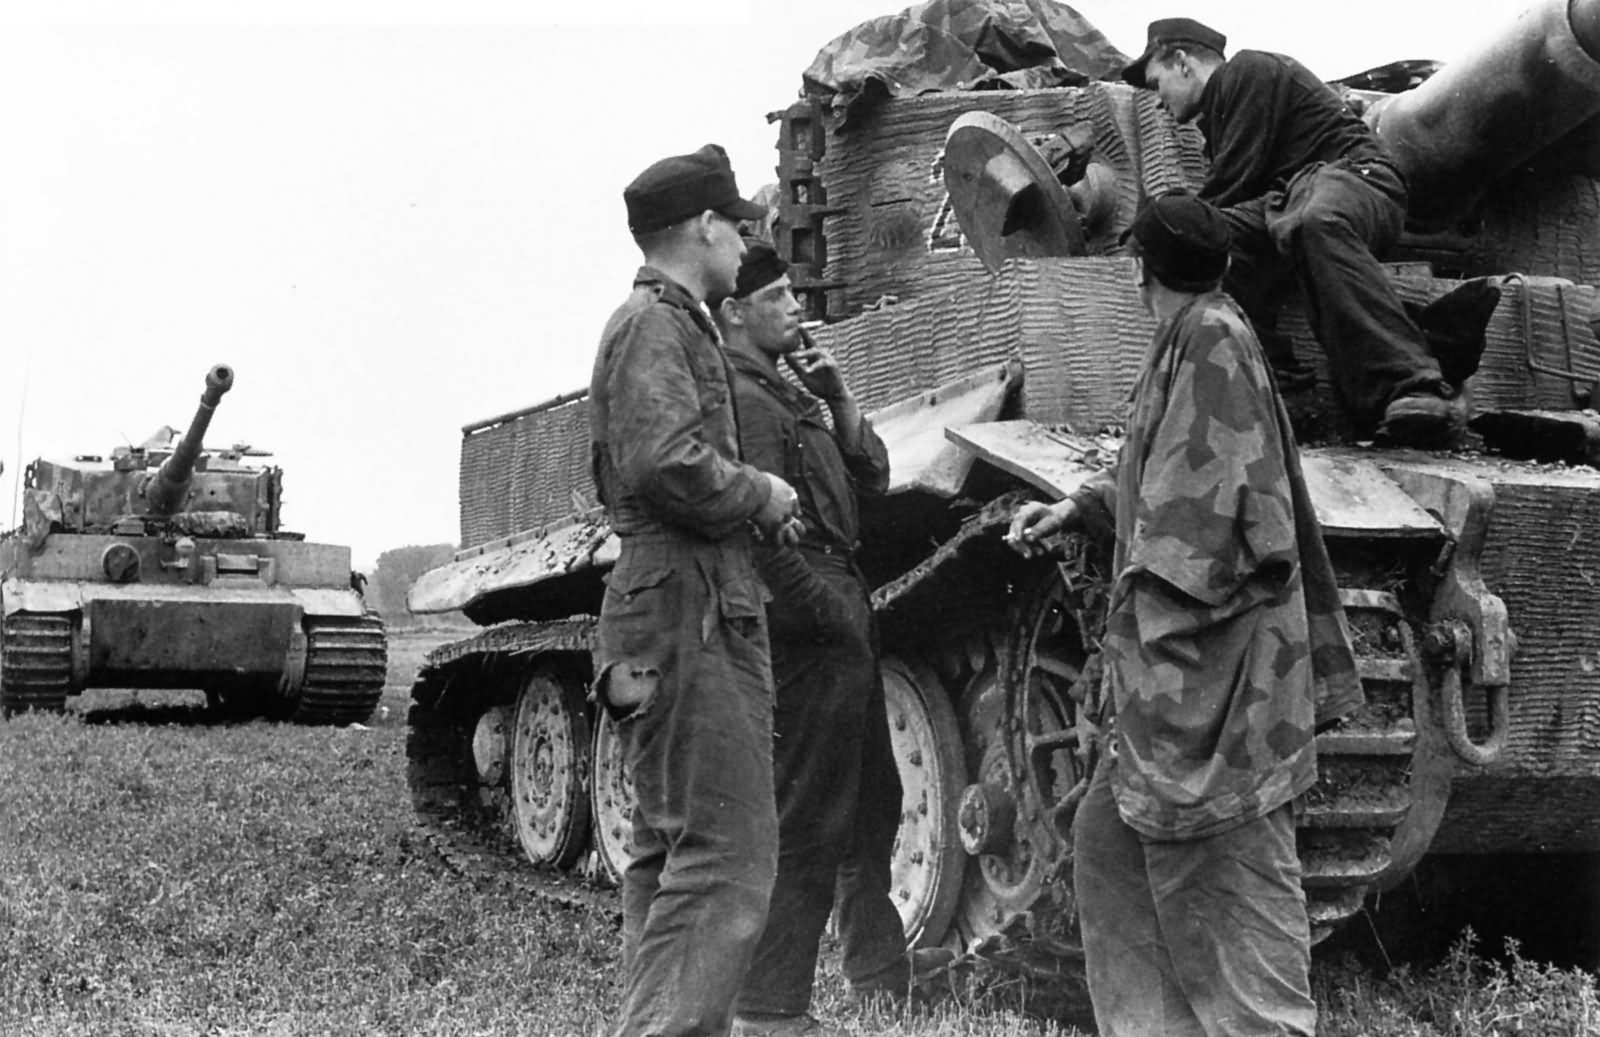 Tiger 224 of schwere Panzer Abteilung 503, Normandy. Tank with zimmerit